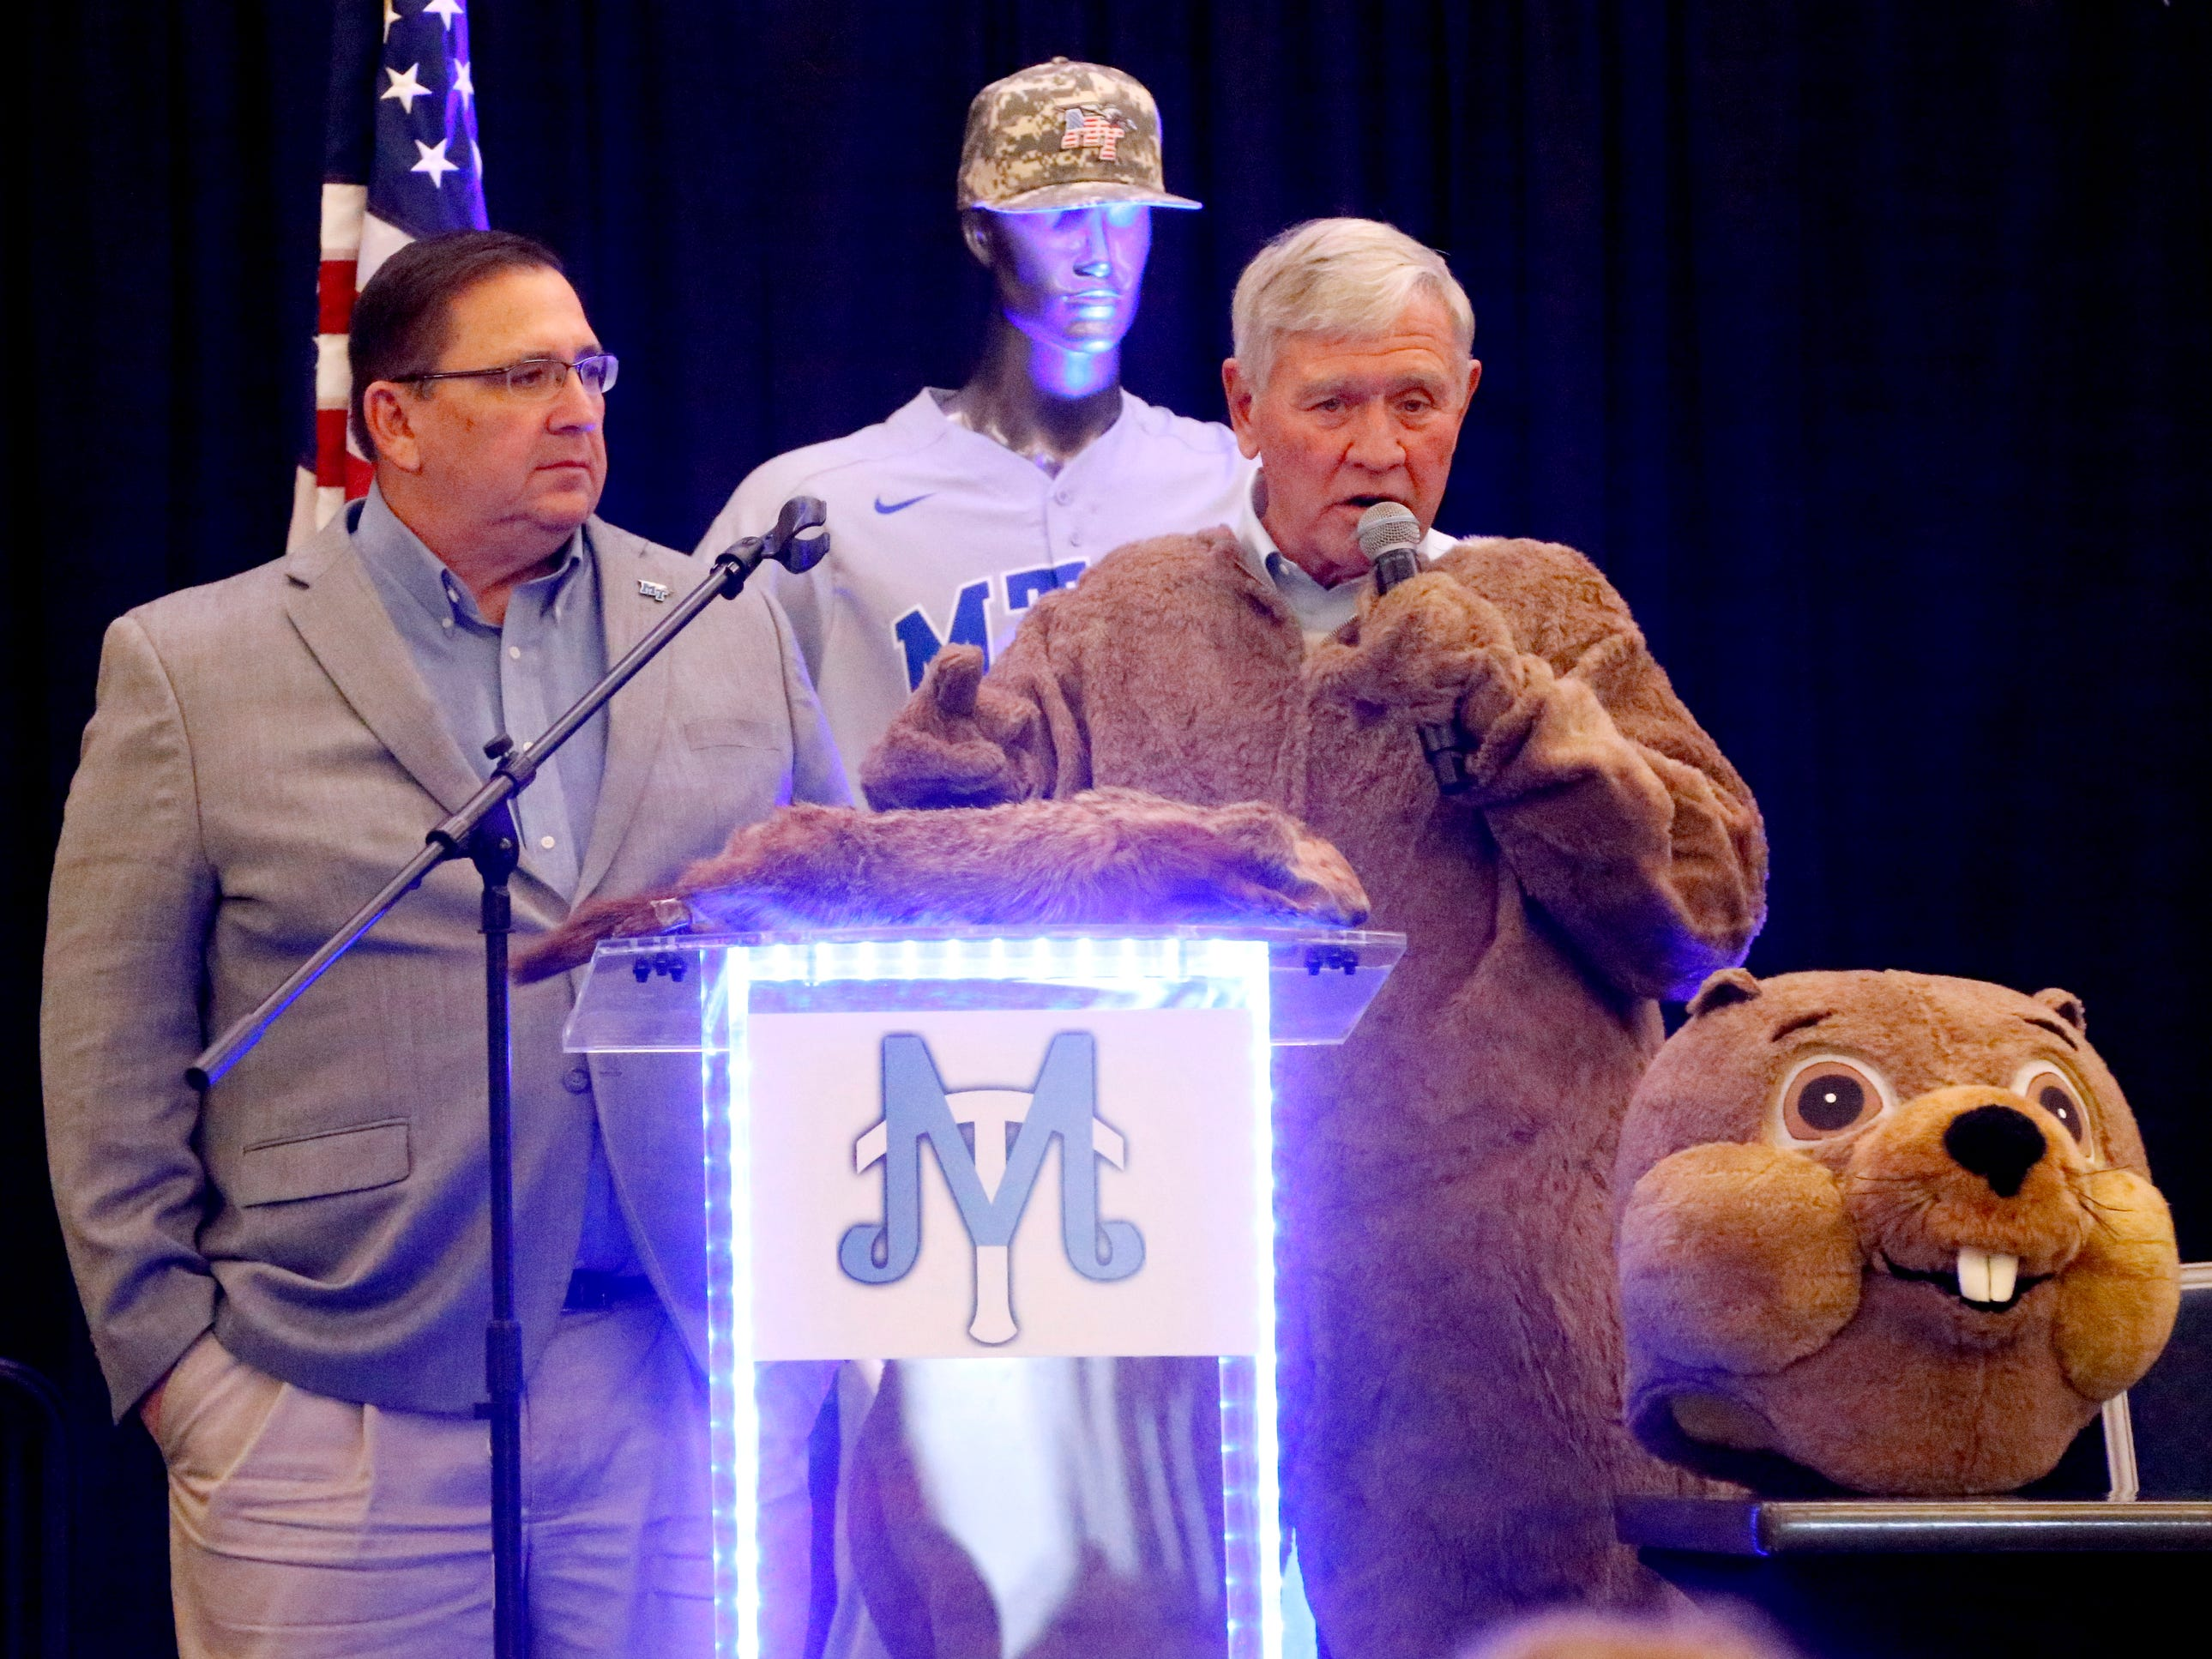 MTSU's new baseball coach Jim Toman, left,  stands with former MTSU baseball Coach Steve Peterson, who dressed as Raider 3  during this years annual Groundhog Day luncheon.